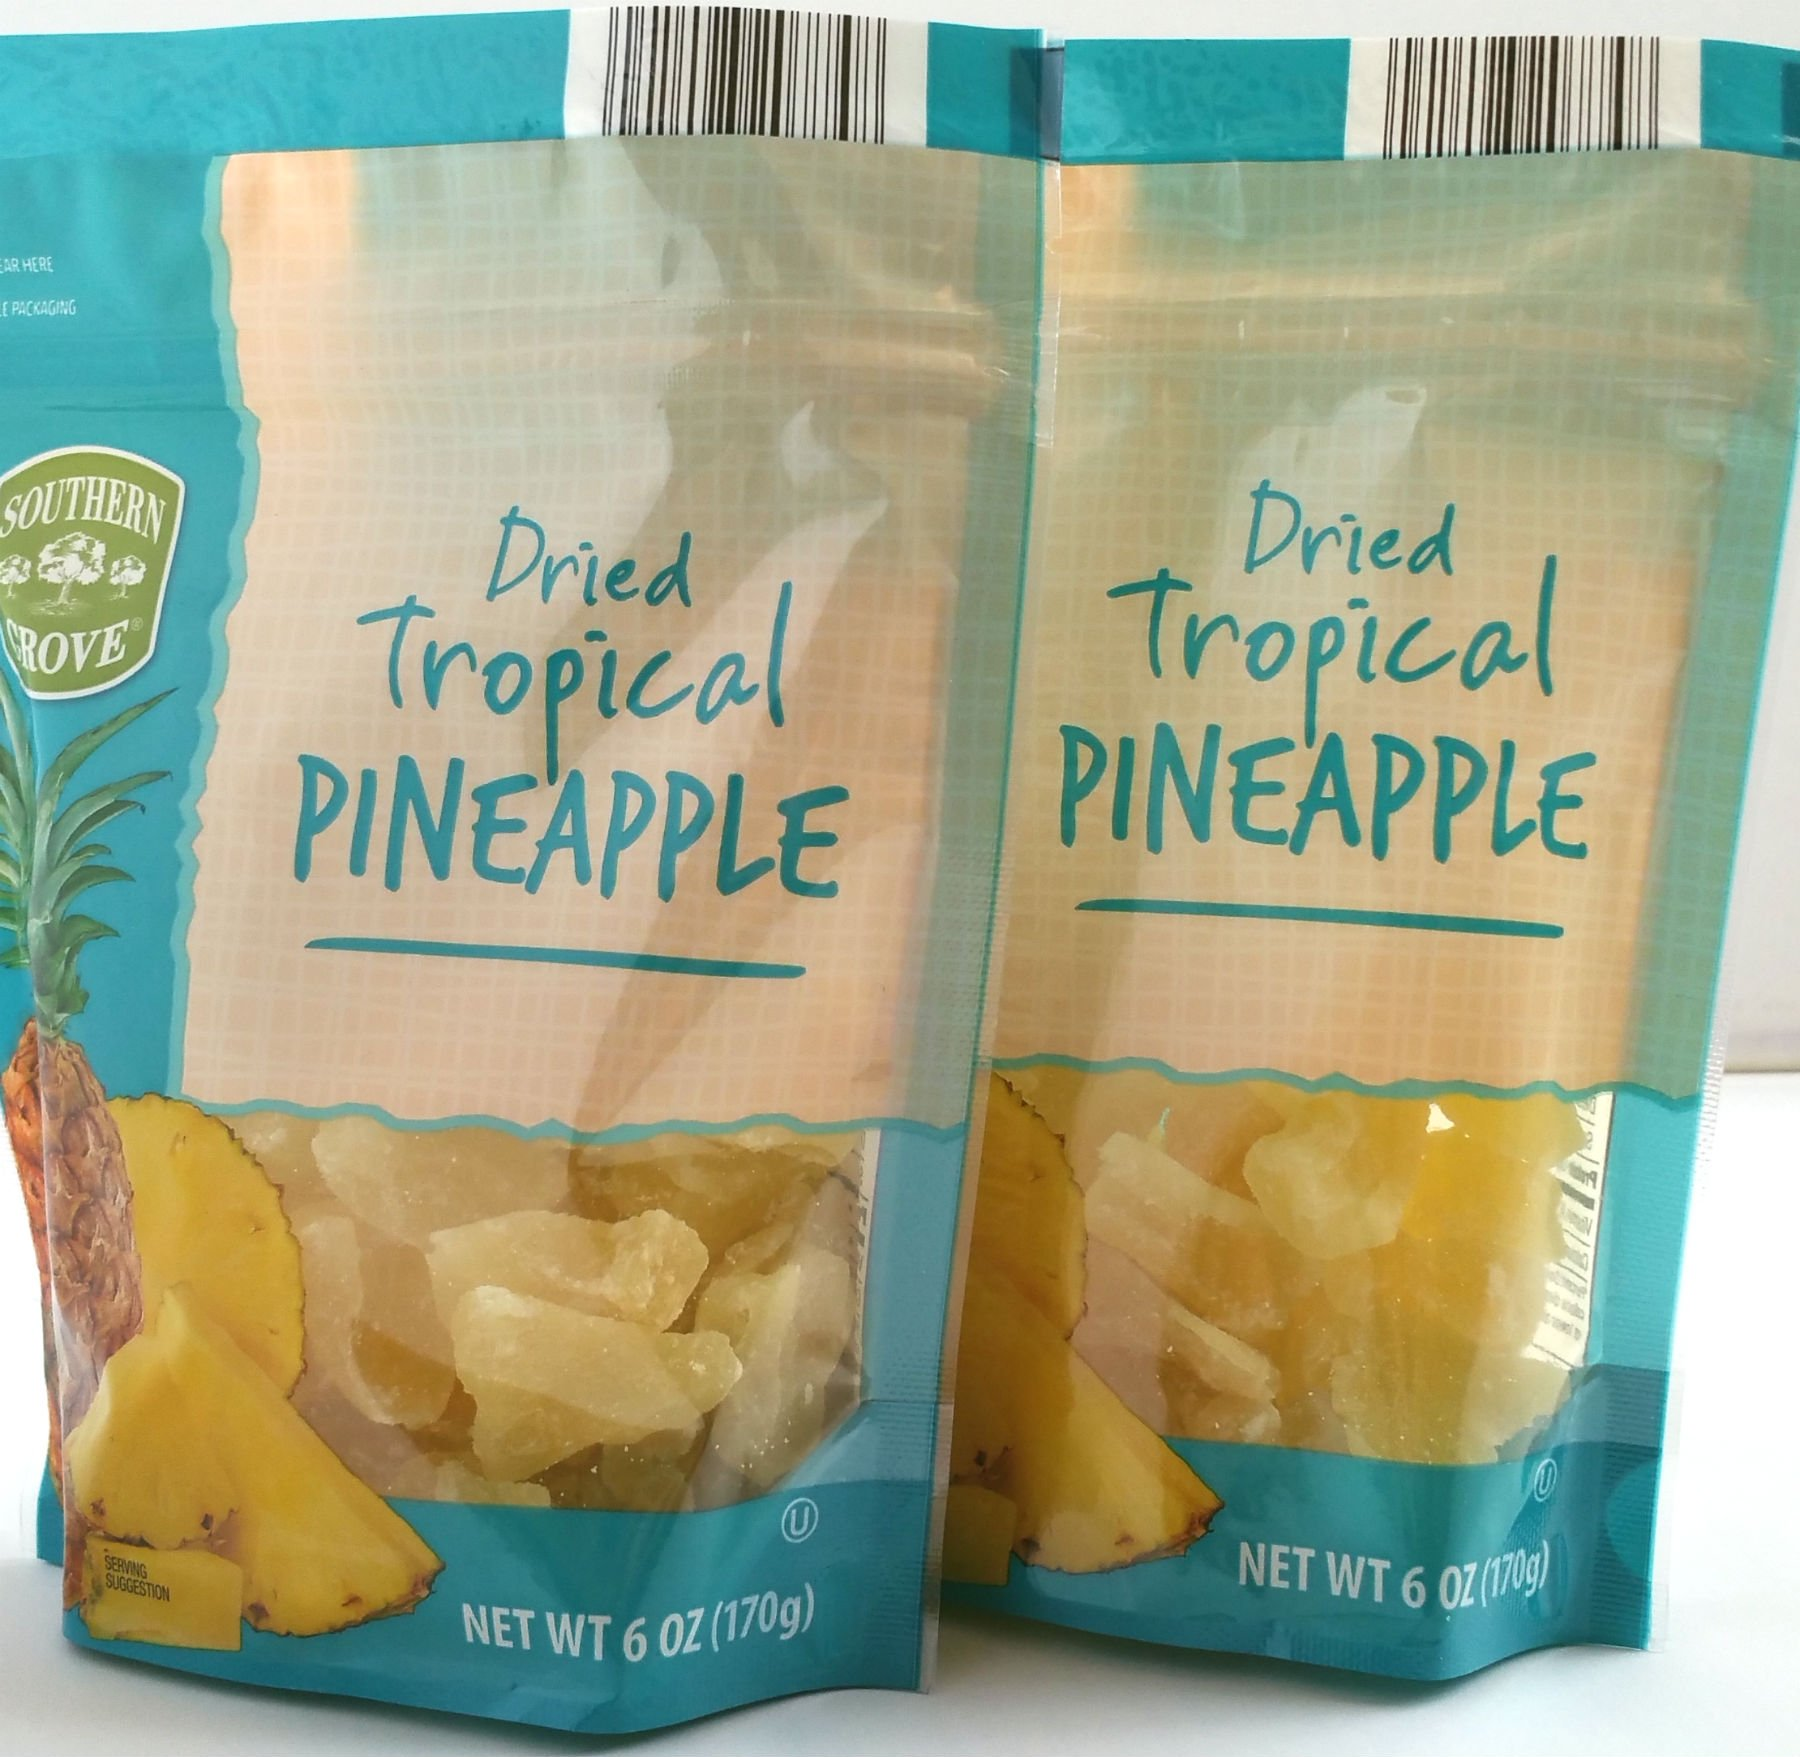 Southern Grove - Dried Tropical Pinapple - Net Wt. 6 Oz. (170g) - Two (2) Pack by Southern Grove - Dried Tropical Pinapple